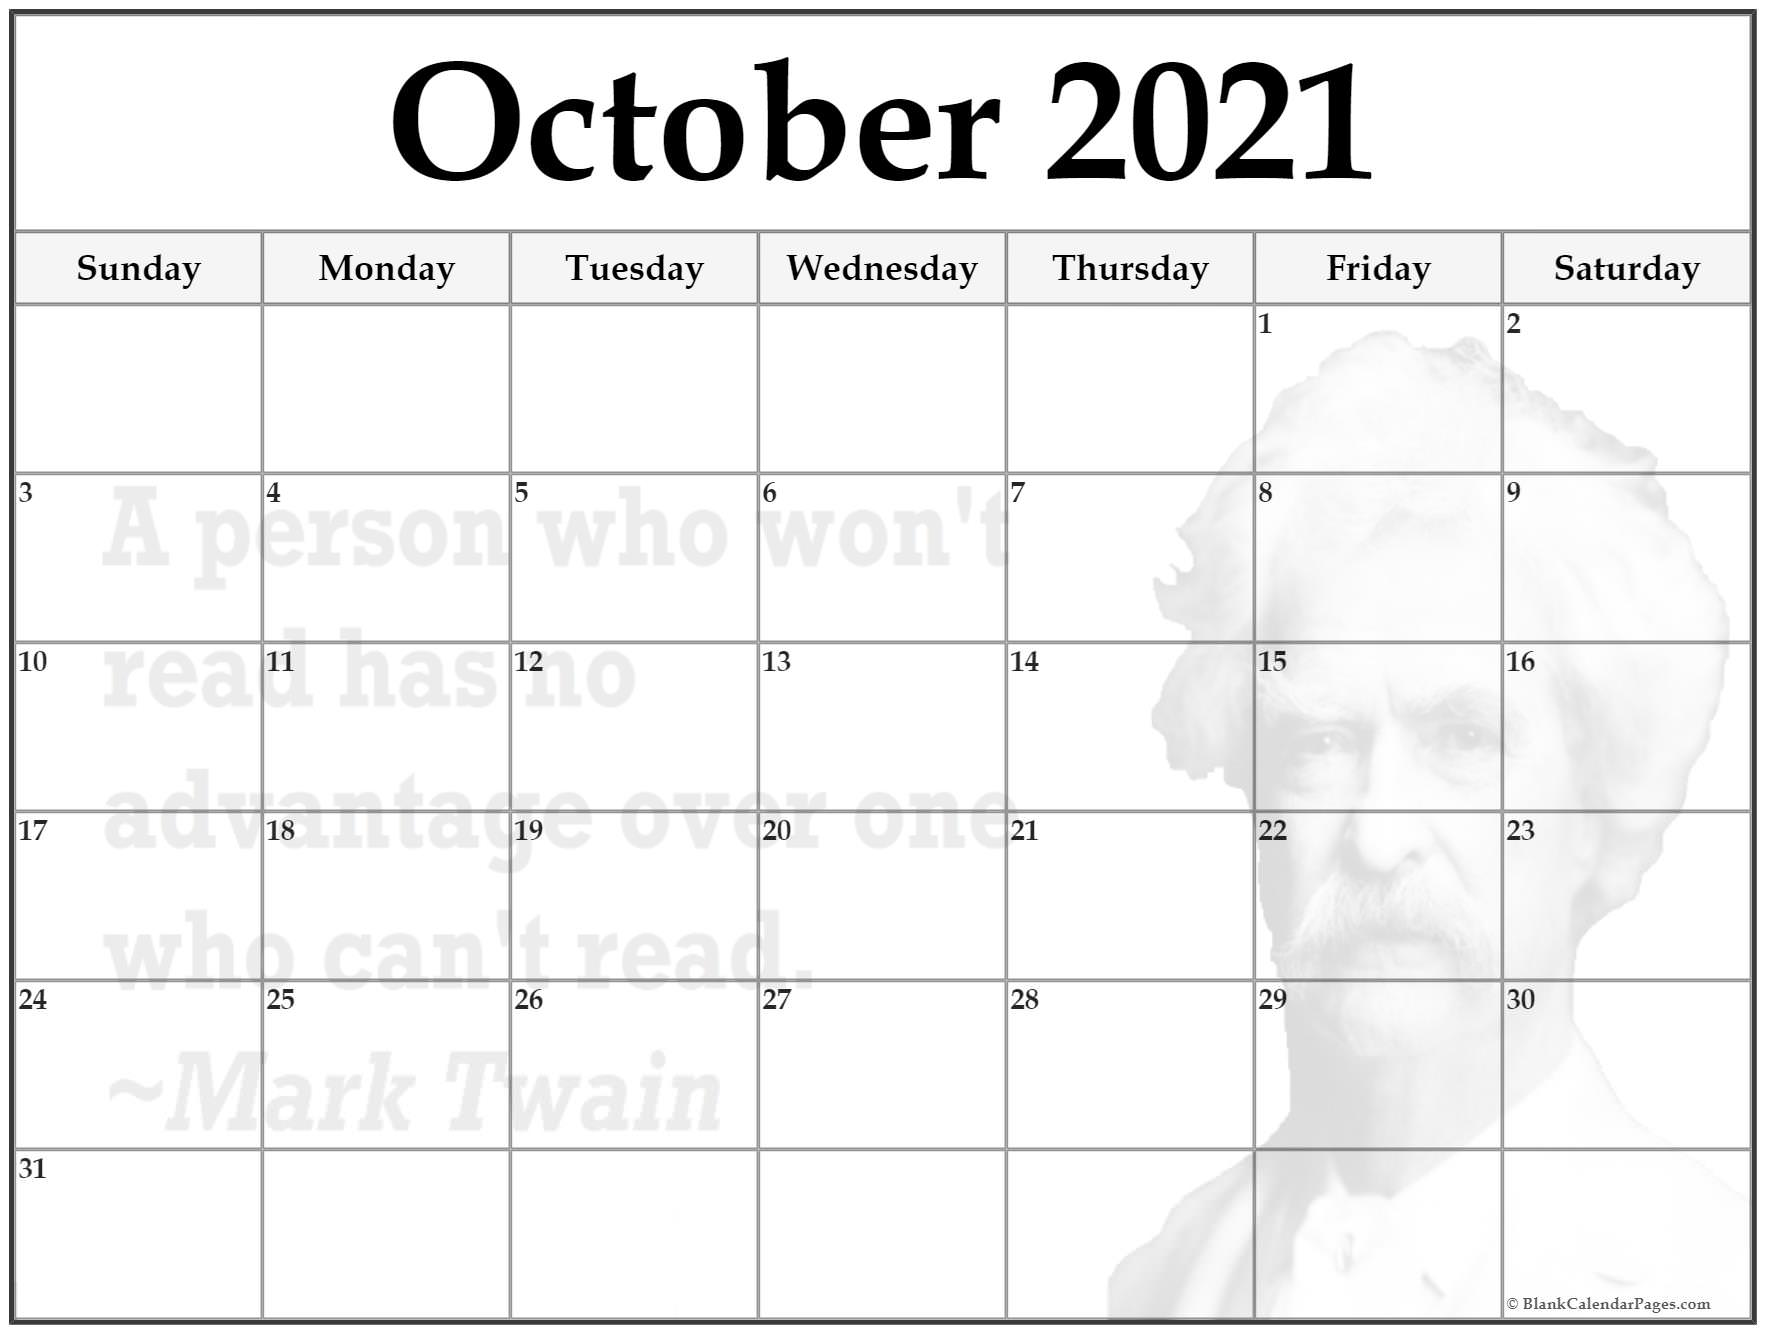 October 2020 printable quote calendar template. A person who won't read has no advantage over a person who can't read. ~Mark Twain